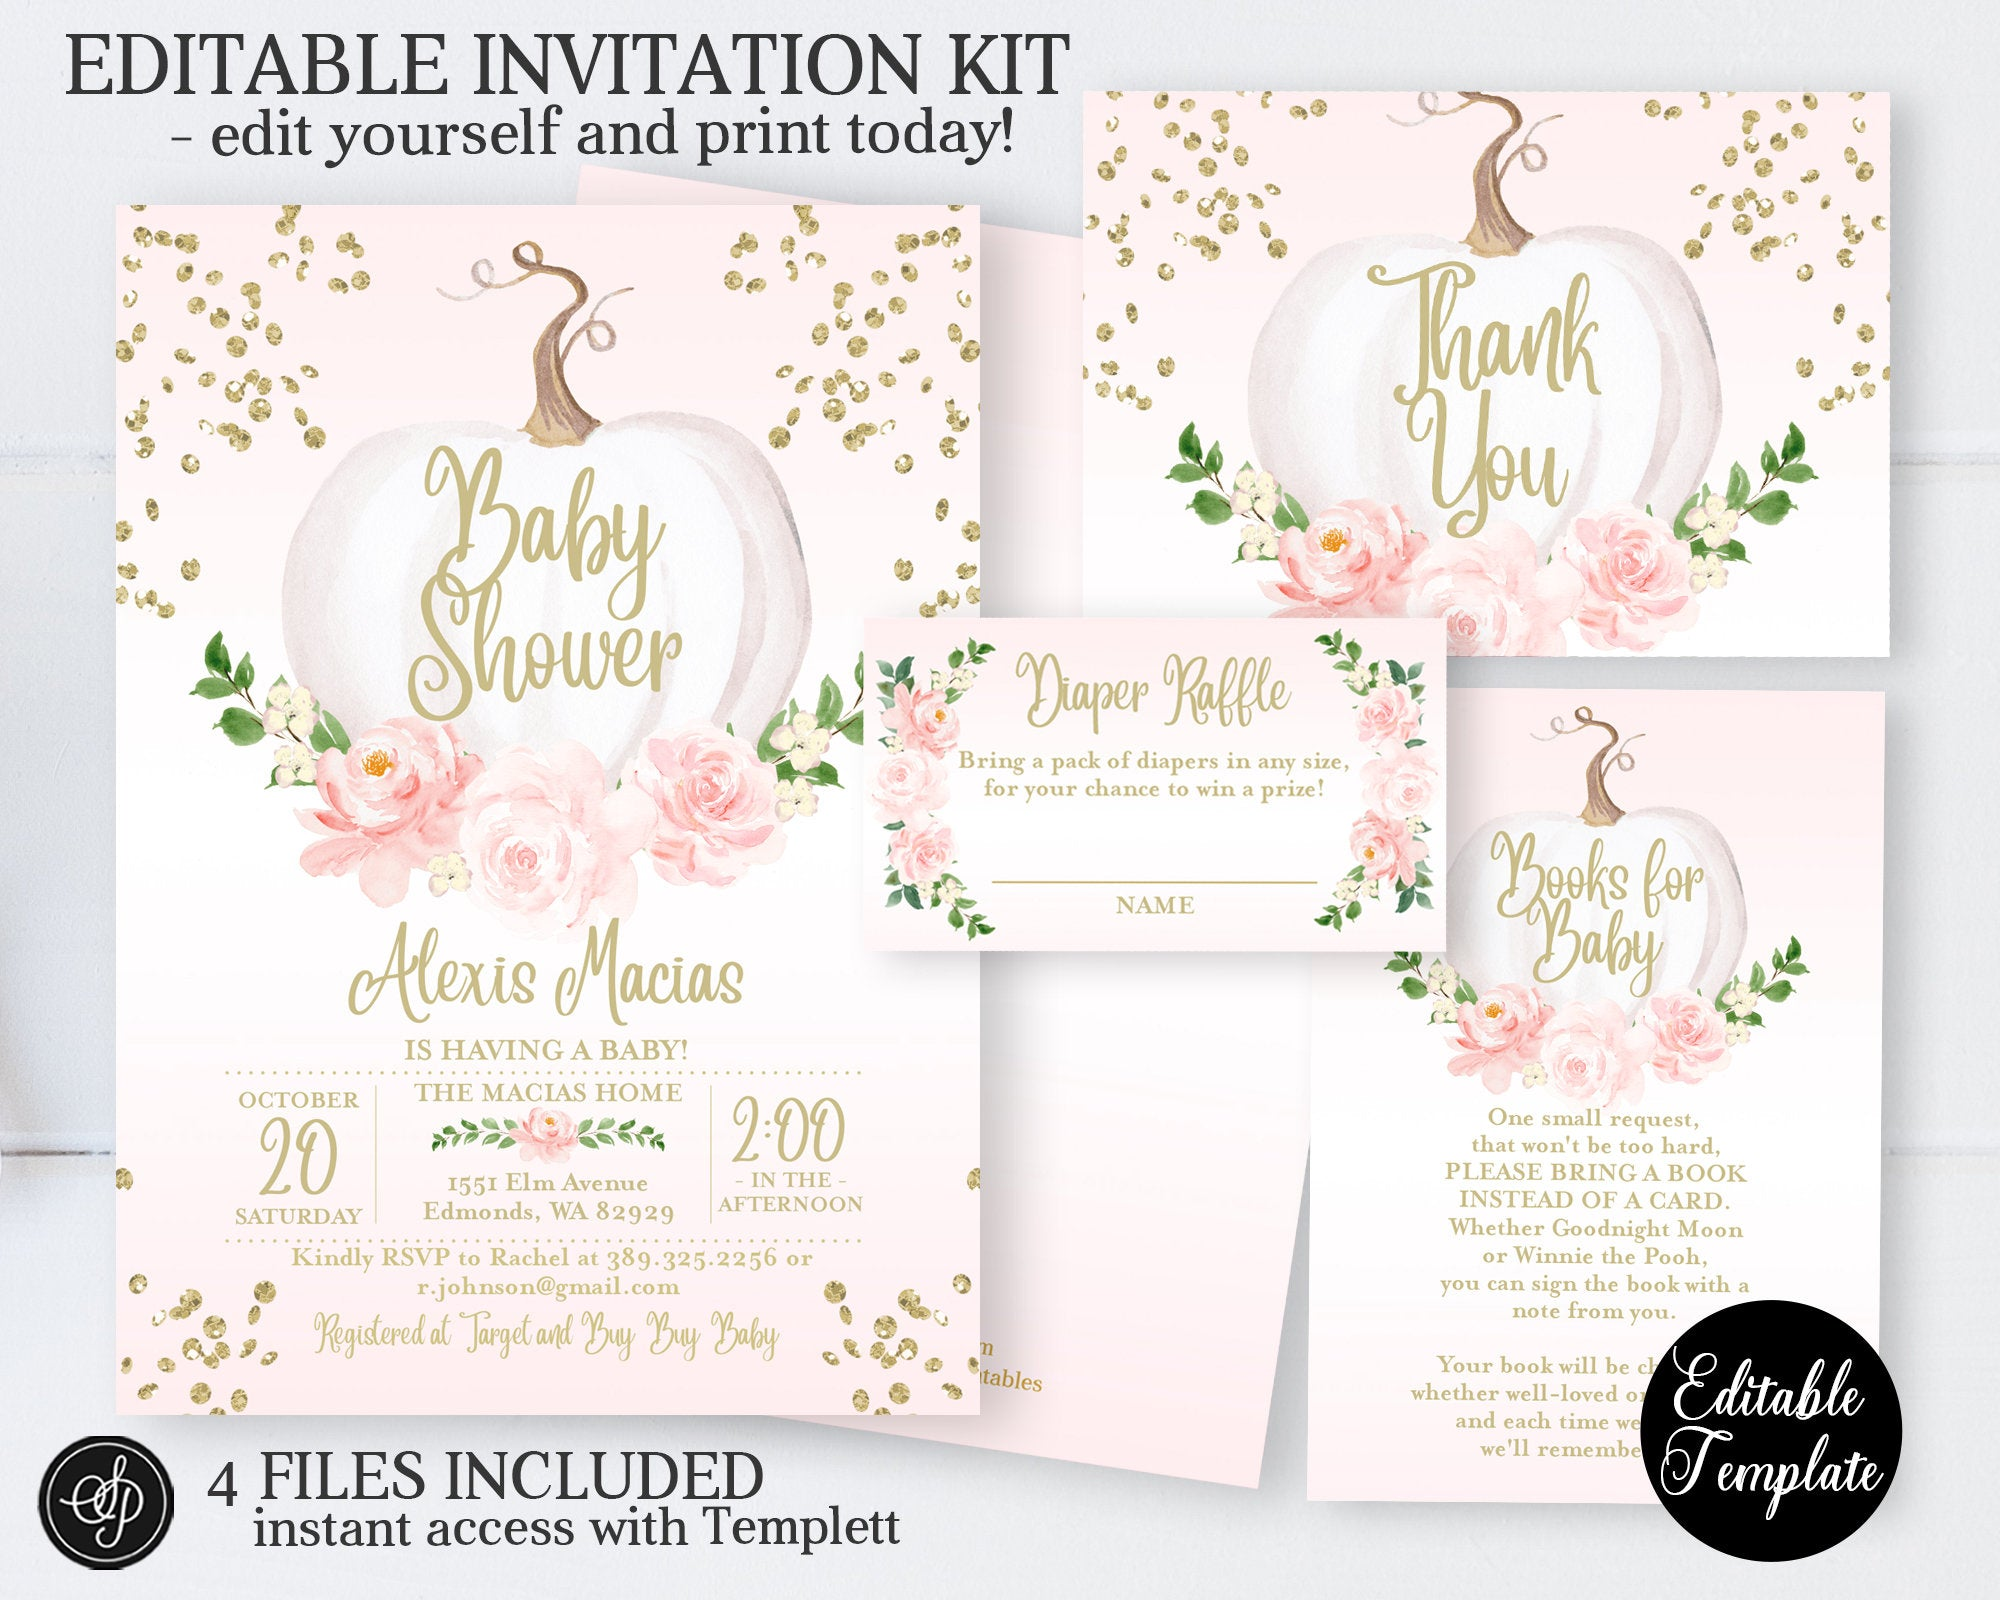 photograph regarding Printable Invitations Kits identify Small Pumpkin Youngster Female Shower Invitation, Crimson Floral White Pumpkin Female Boy or girl Shower Invite, Printable Invitation, Templett, SP0056B